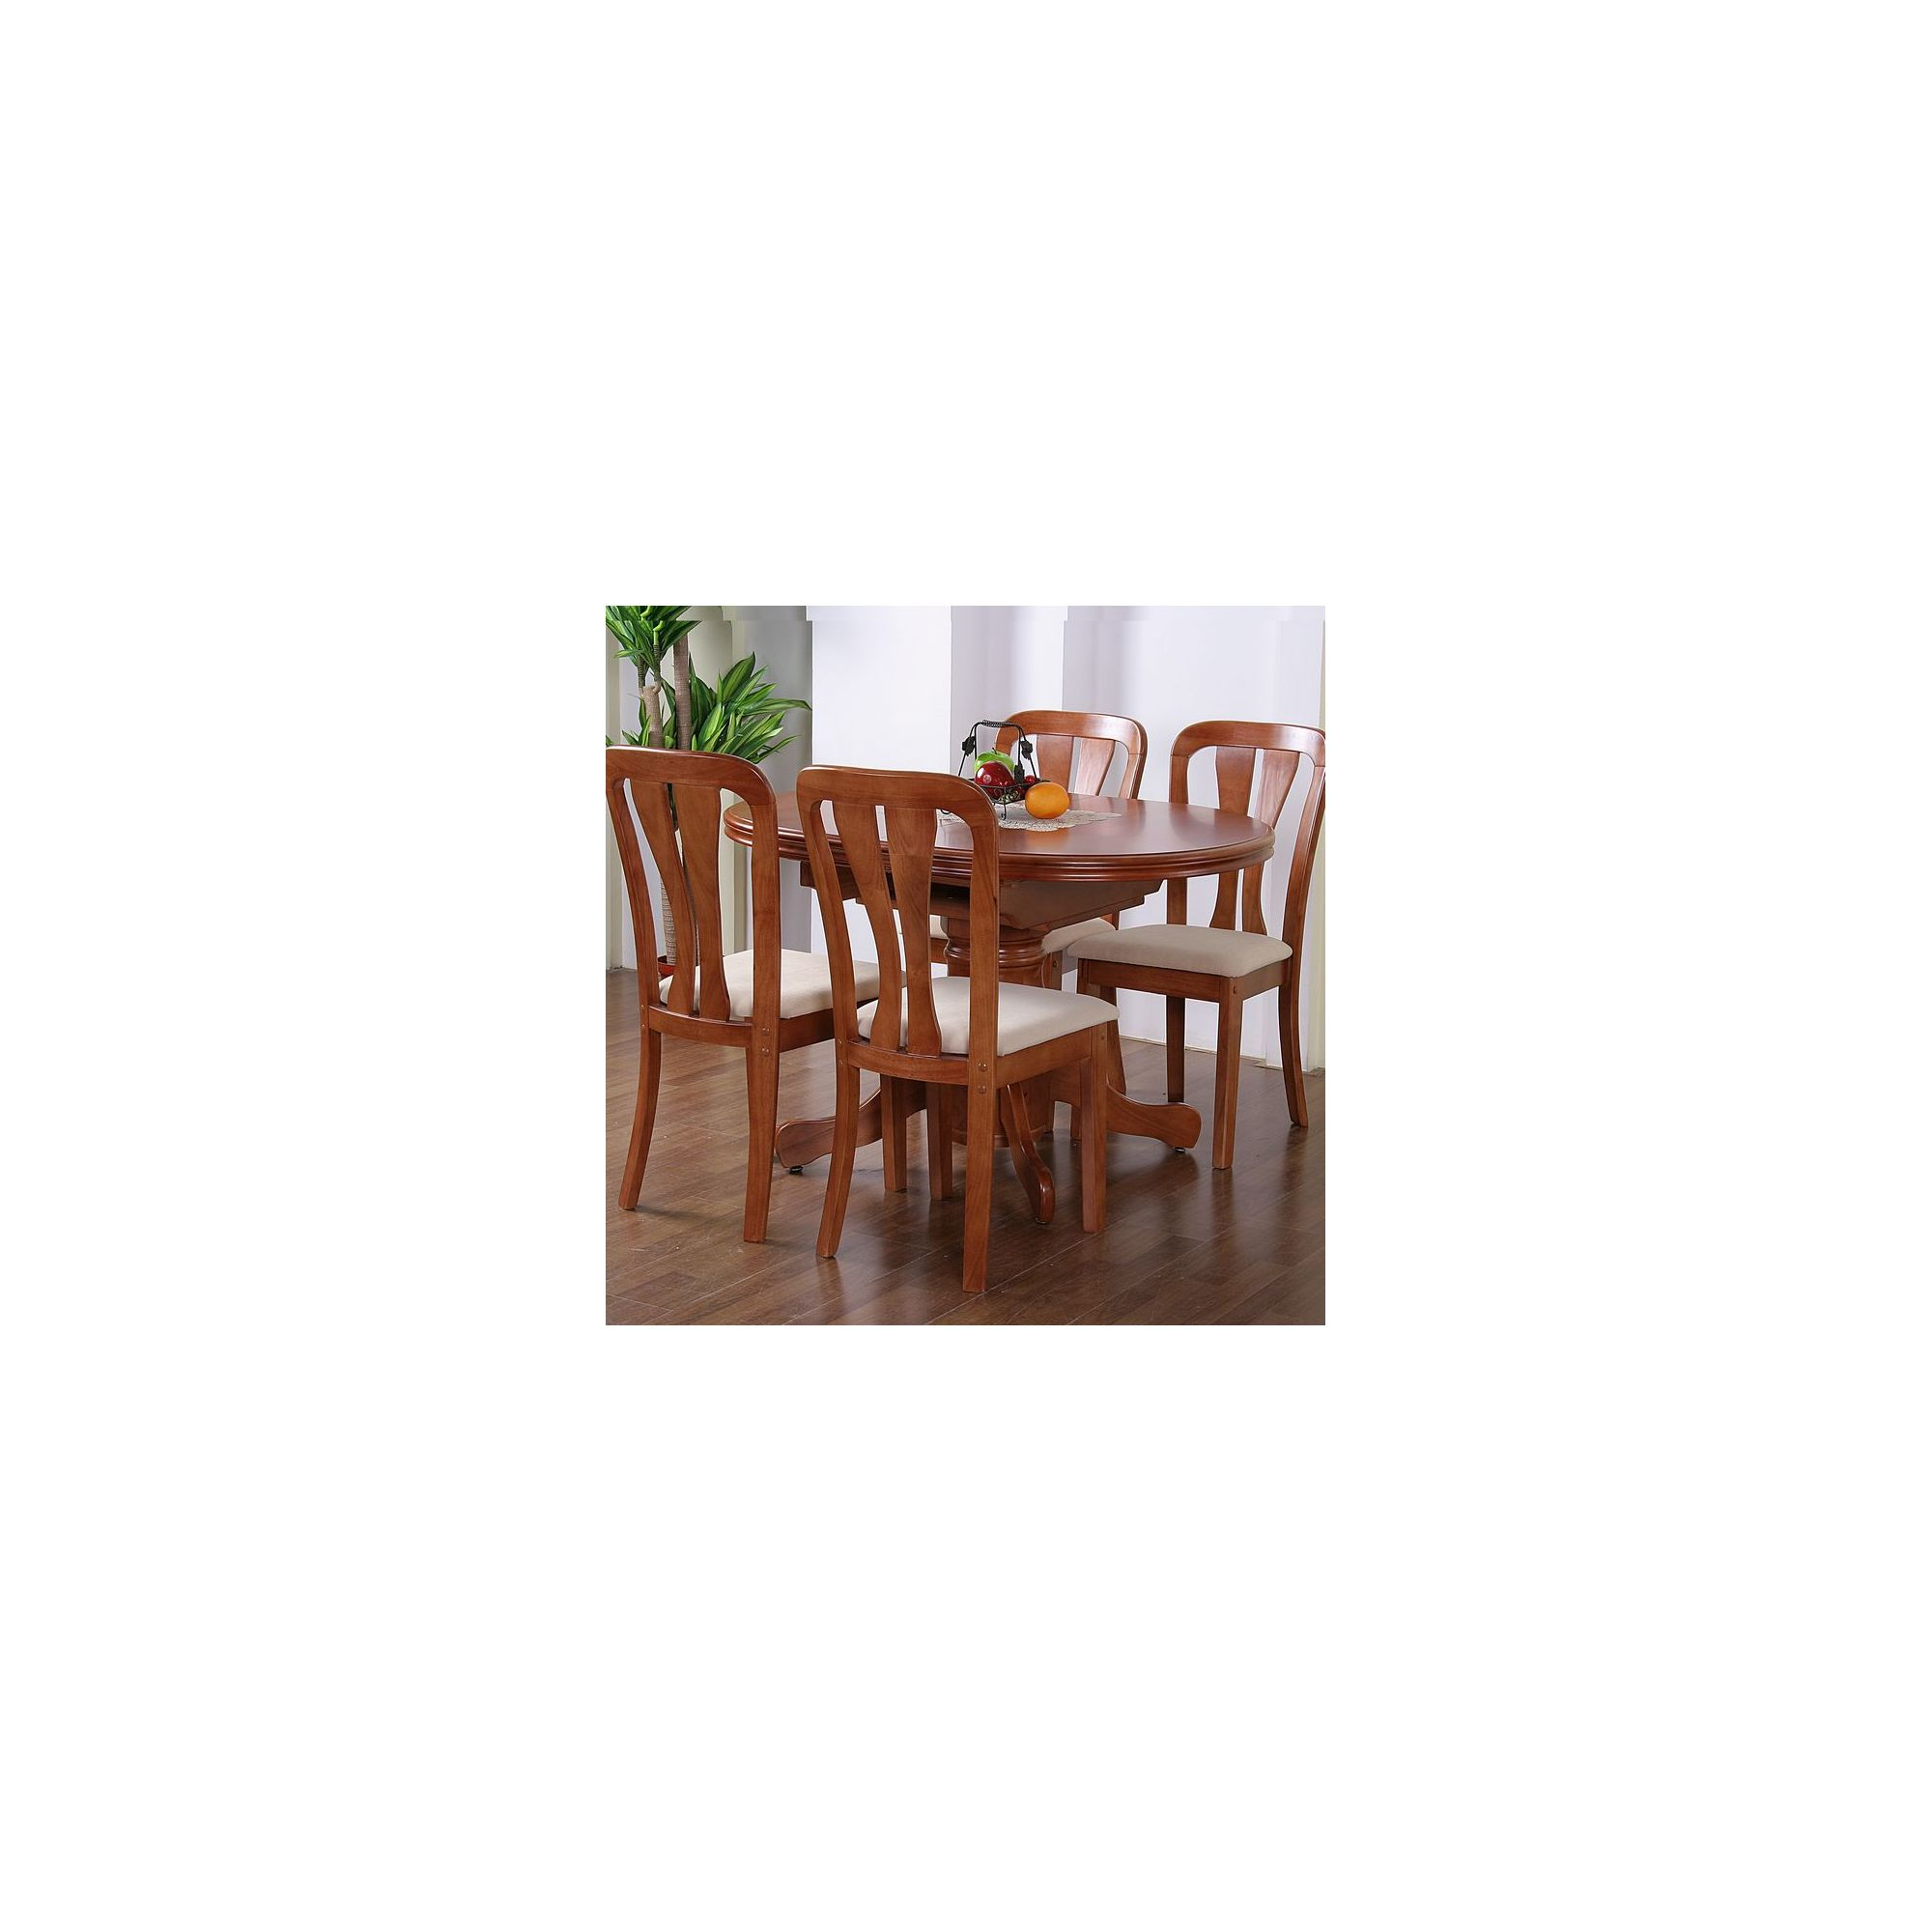 G&P Furniture Windsor House 5-Piece Stratford Oval Flip Top Extending Dining Set with Slatted Back Chair - Cherry at Tesco Direct